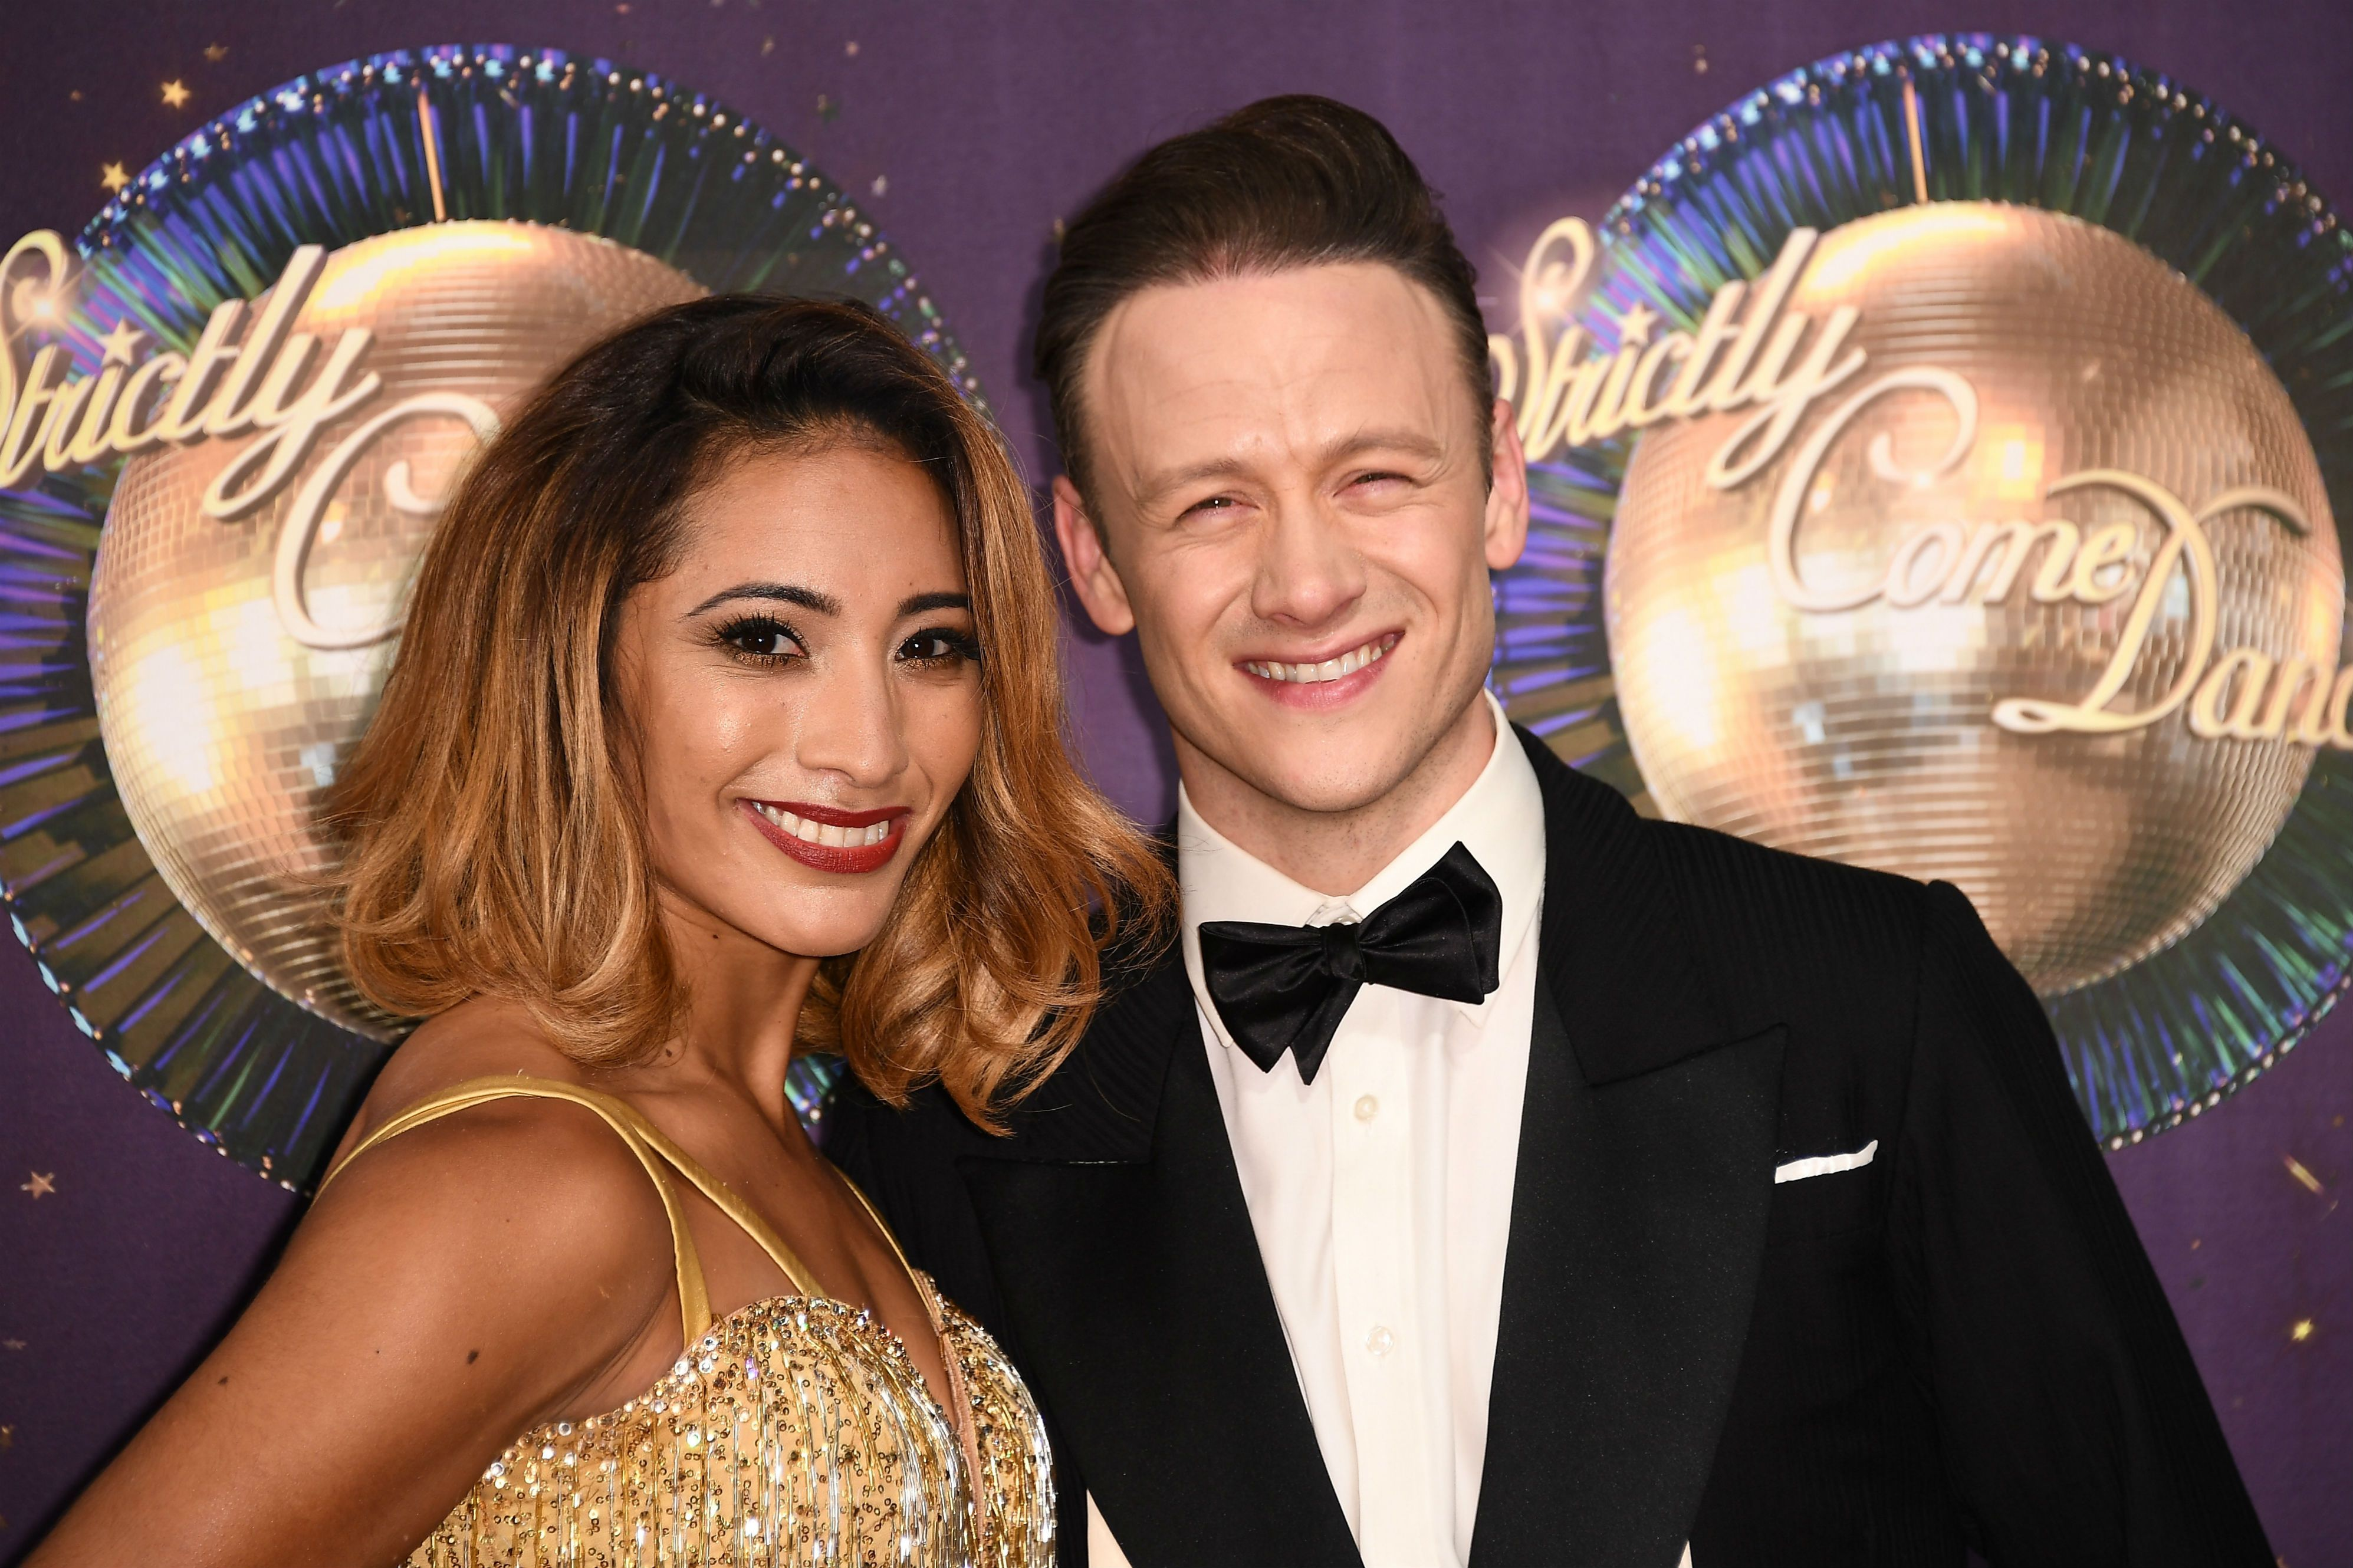 """Strictly Come Dancing pro Karen Hauer has """"really lovely relationship"""" with ex-husband Kevin Clifton"""